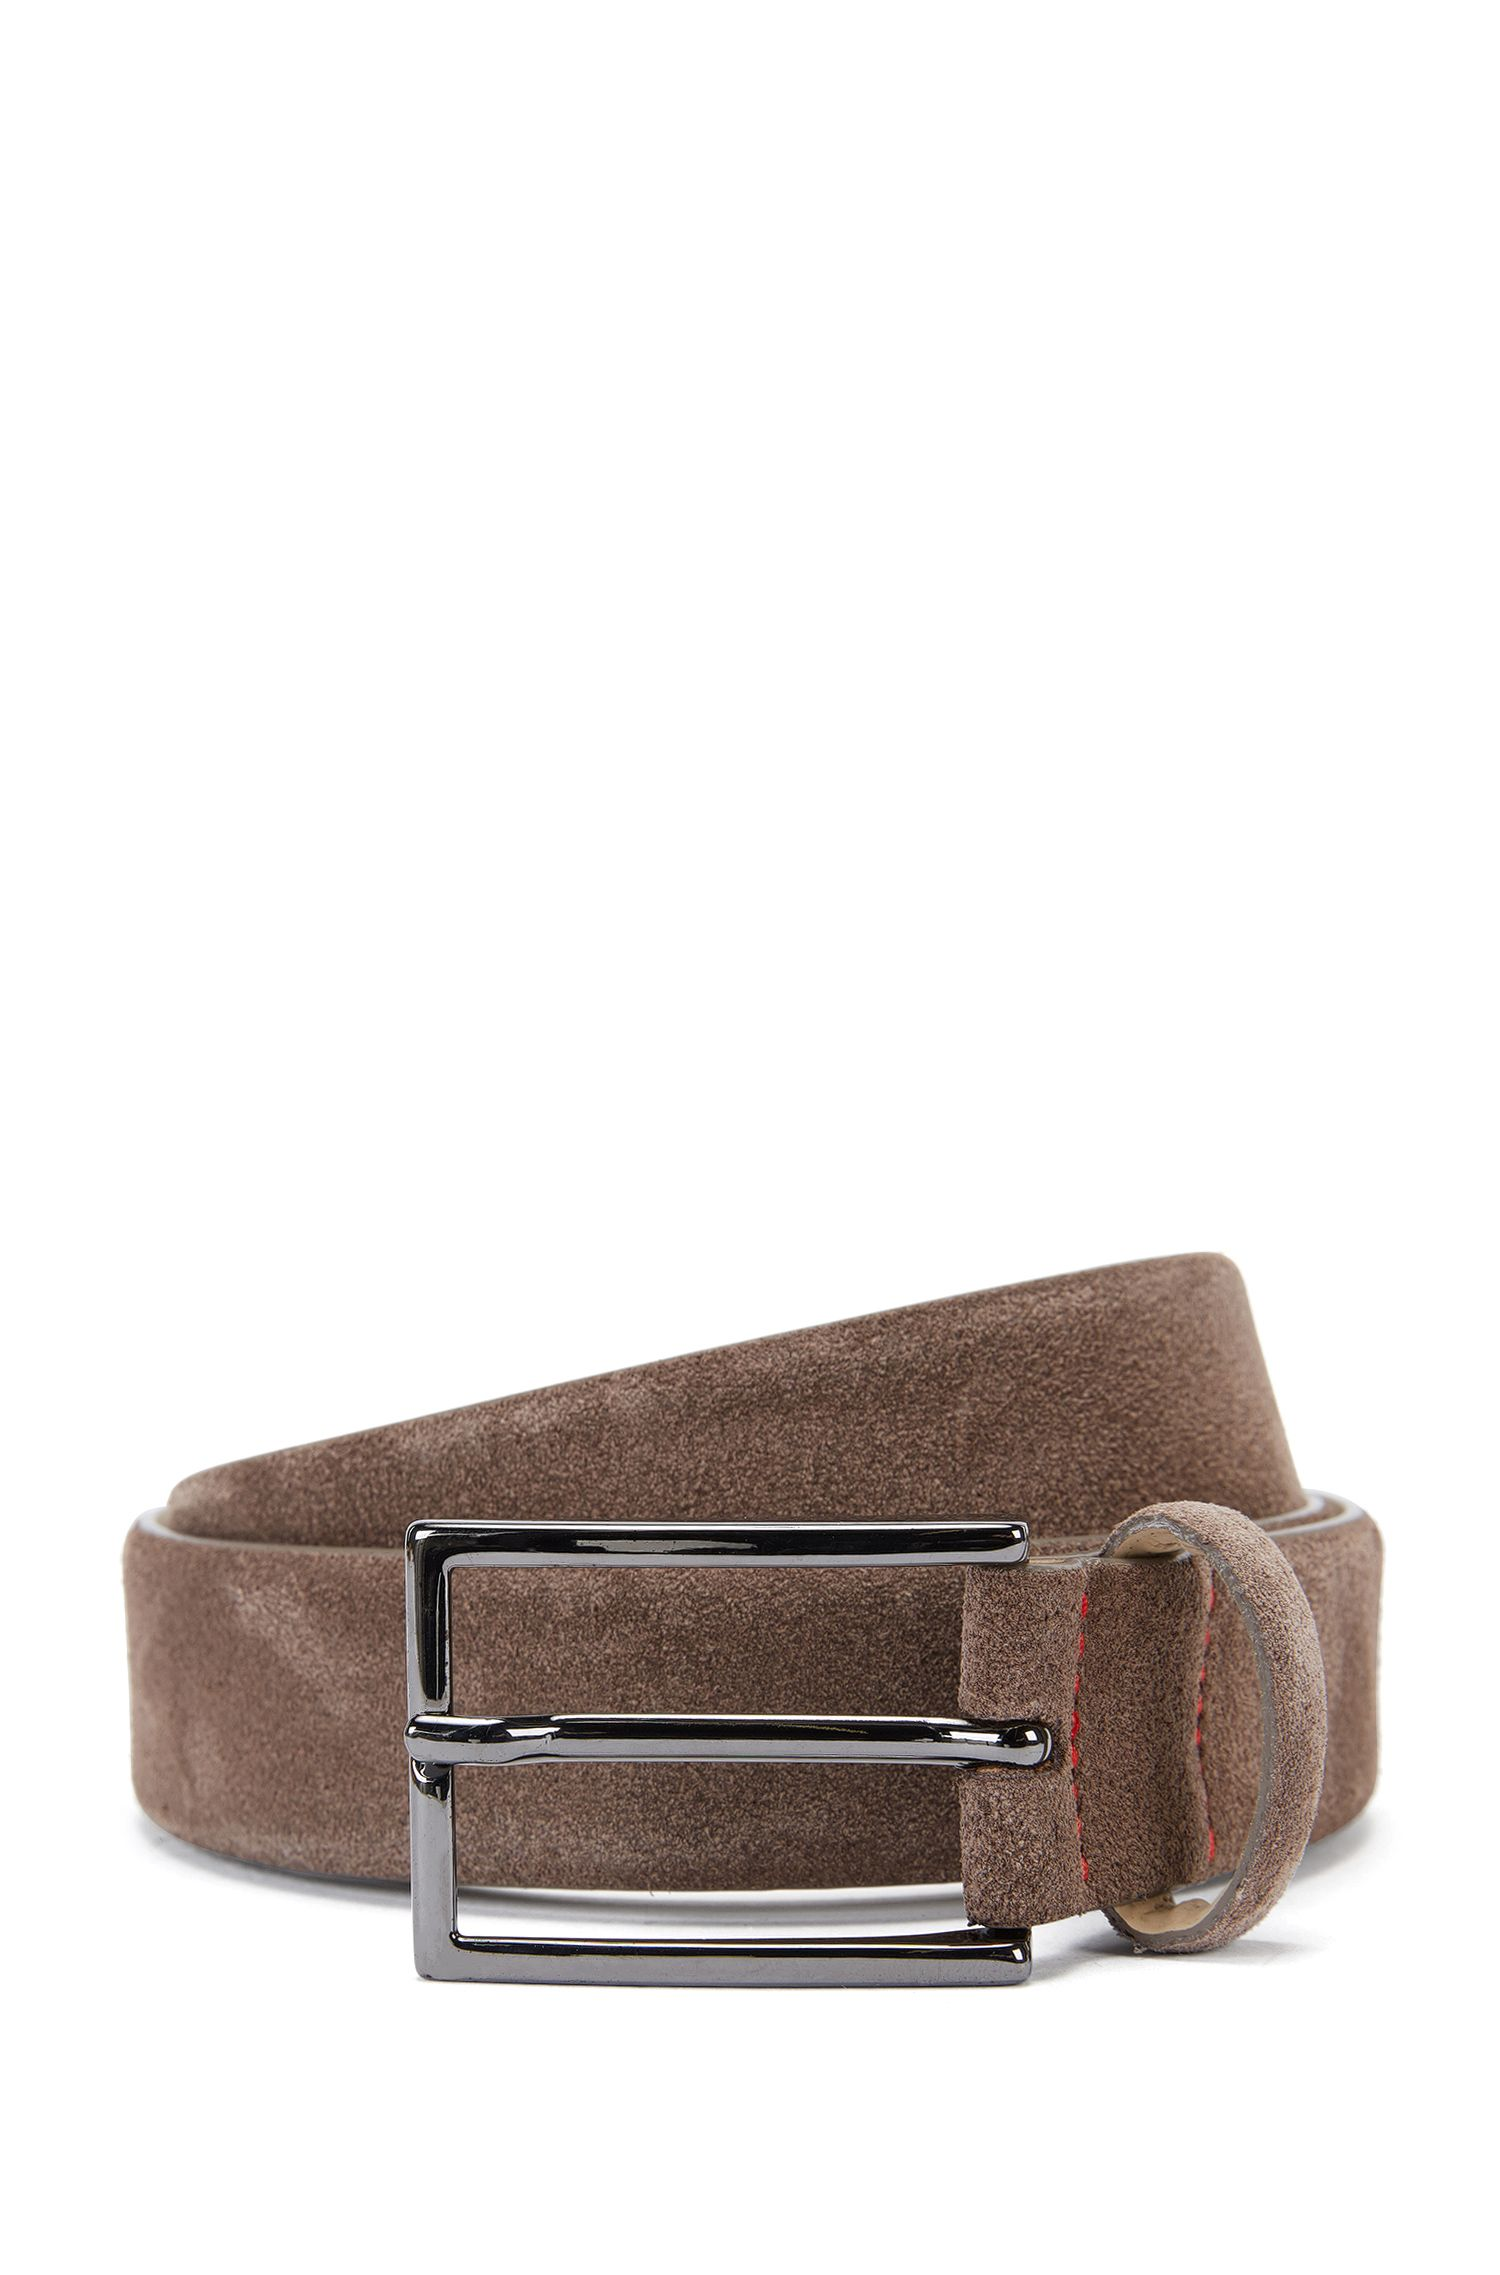 Suede belt with signature stitching